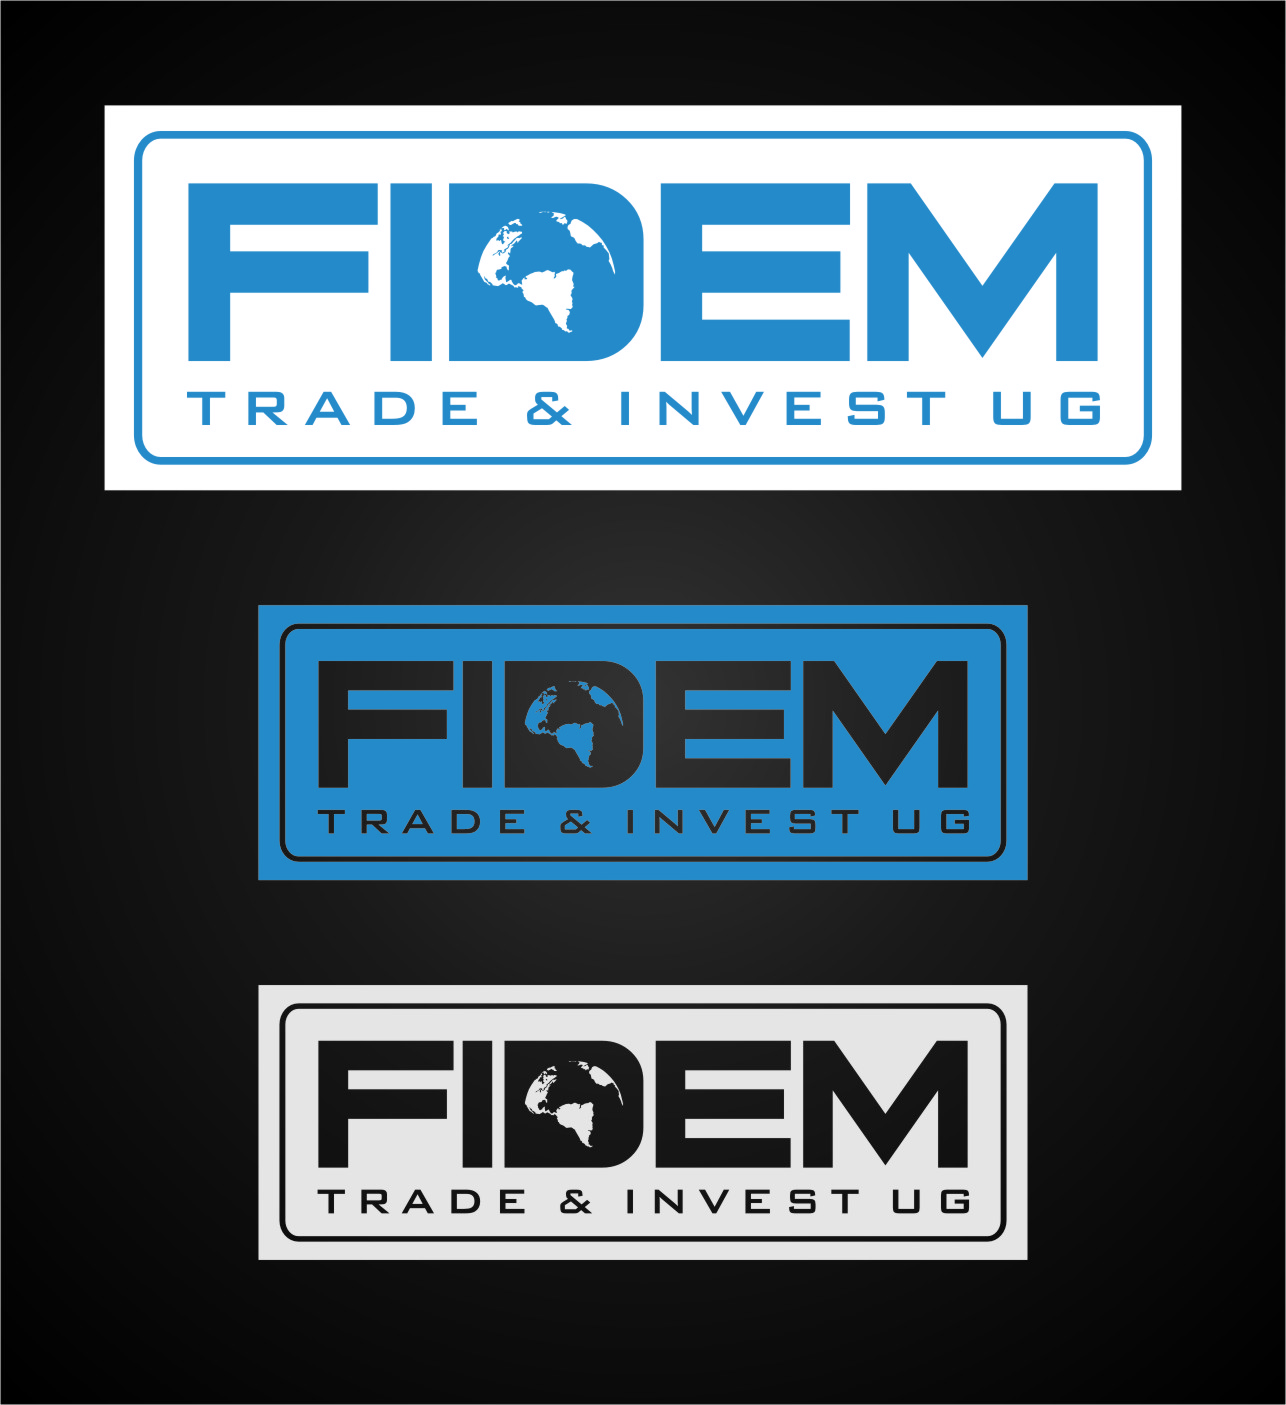 Logo Design by Ngepet_art - Entry No. 368 in the Logo Design Contest Professional Logo Design for FIDEM Trade & Invest UG.